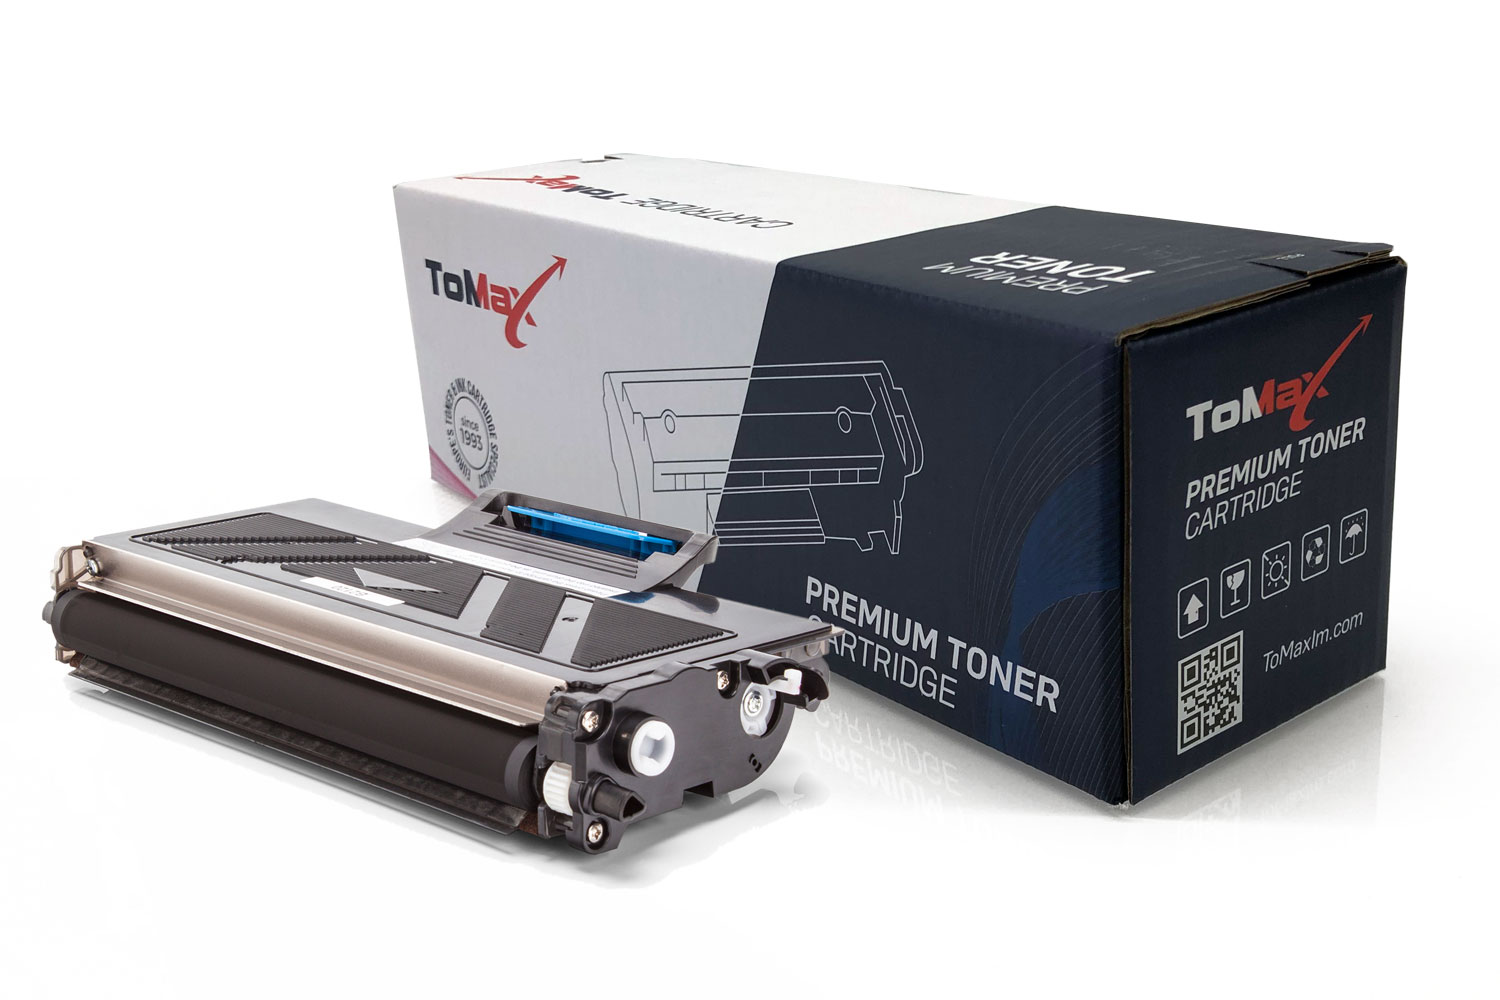 ToMax Premium Toner Cartridge replaces Samsung MLT-D1082S (SU781A) / 1082S Black